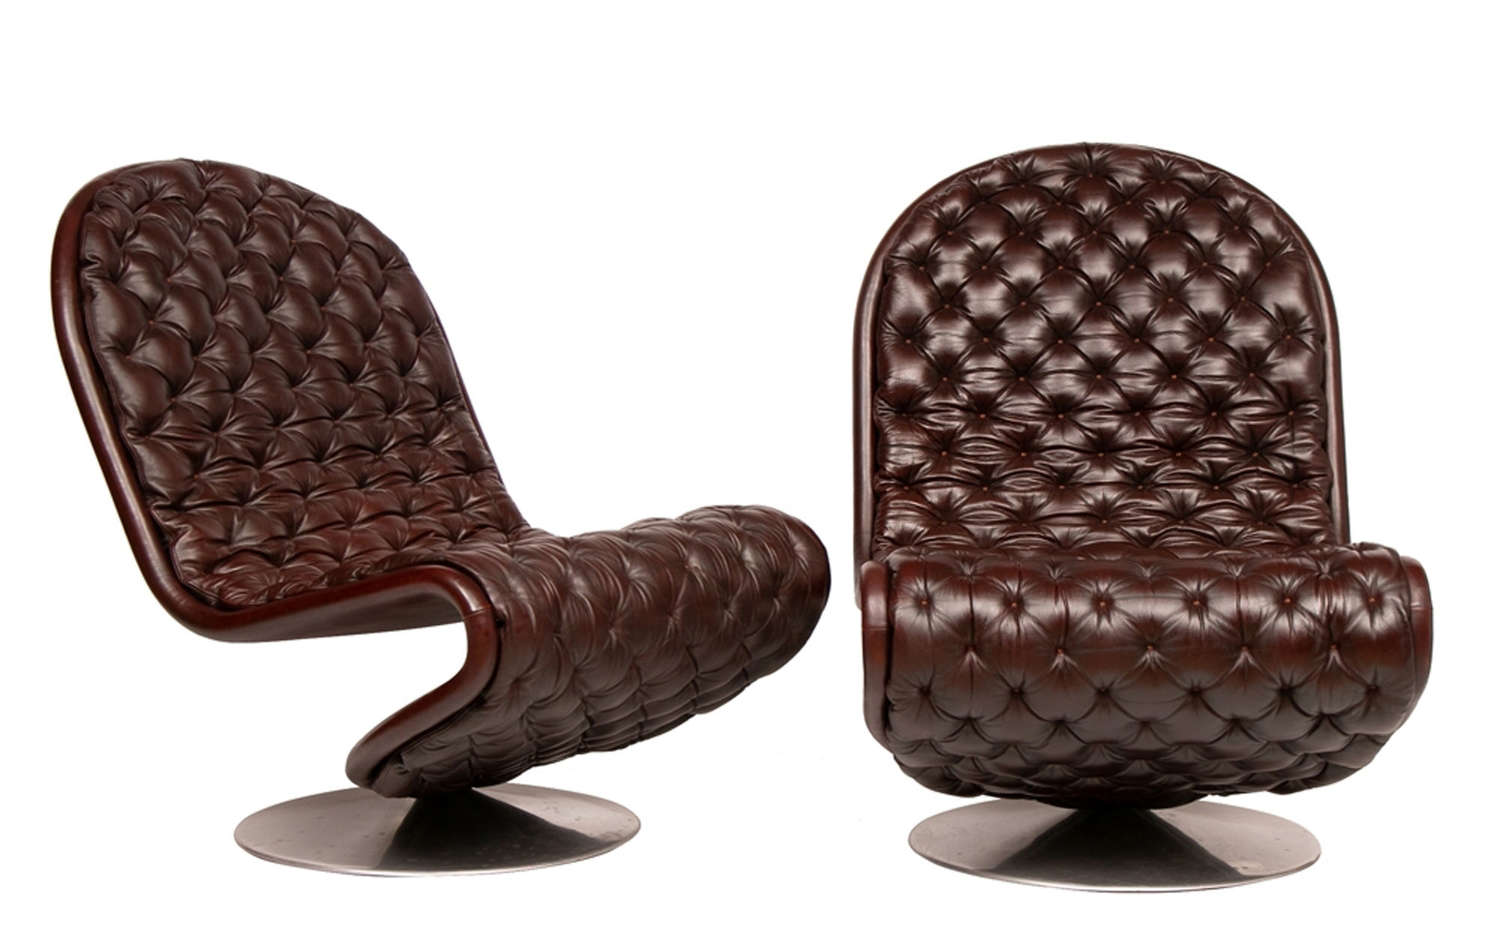 Model E Lounge Chairs by Verner Panton for Fritz Hansen